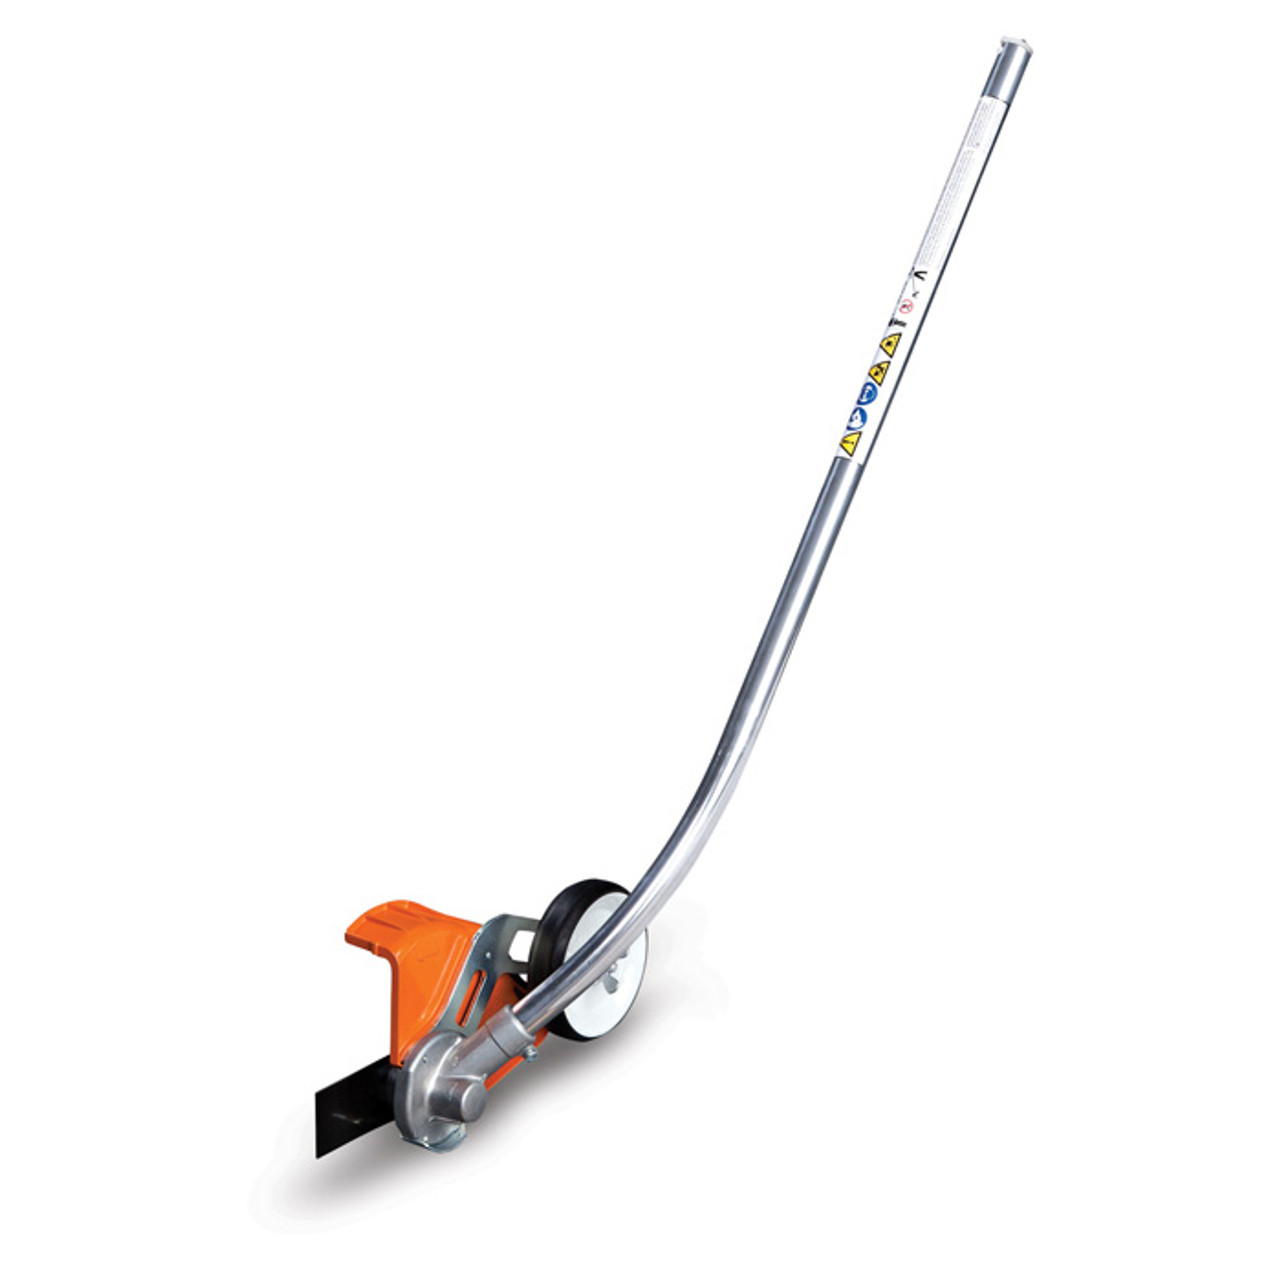 STIHL FCB-KM Curved Shaft Lawn Edger KombiSystem Attachment Image